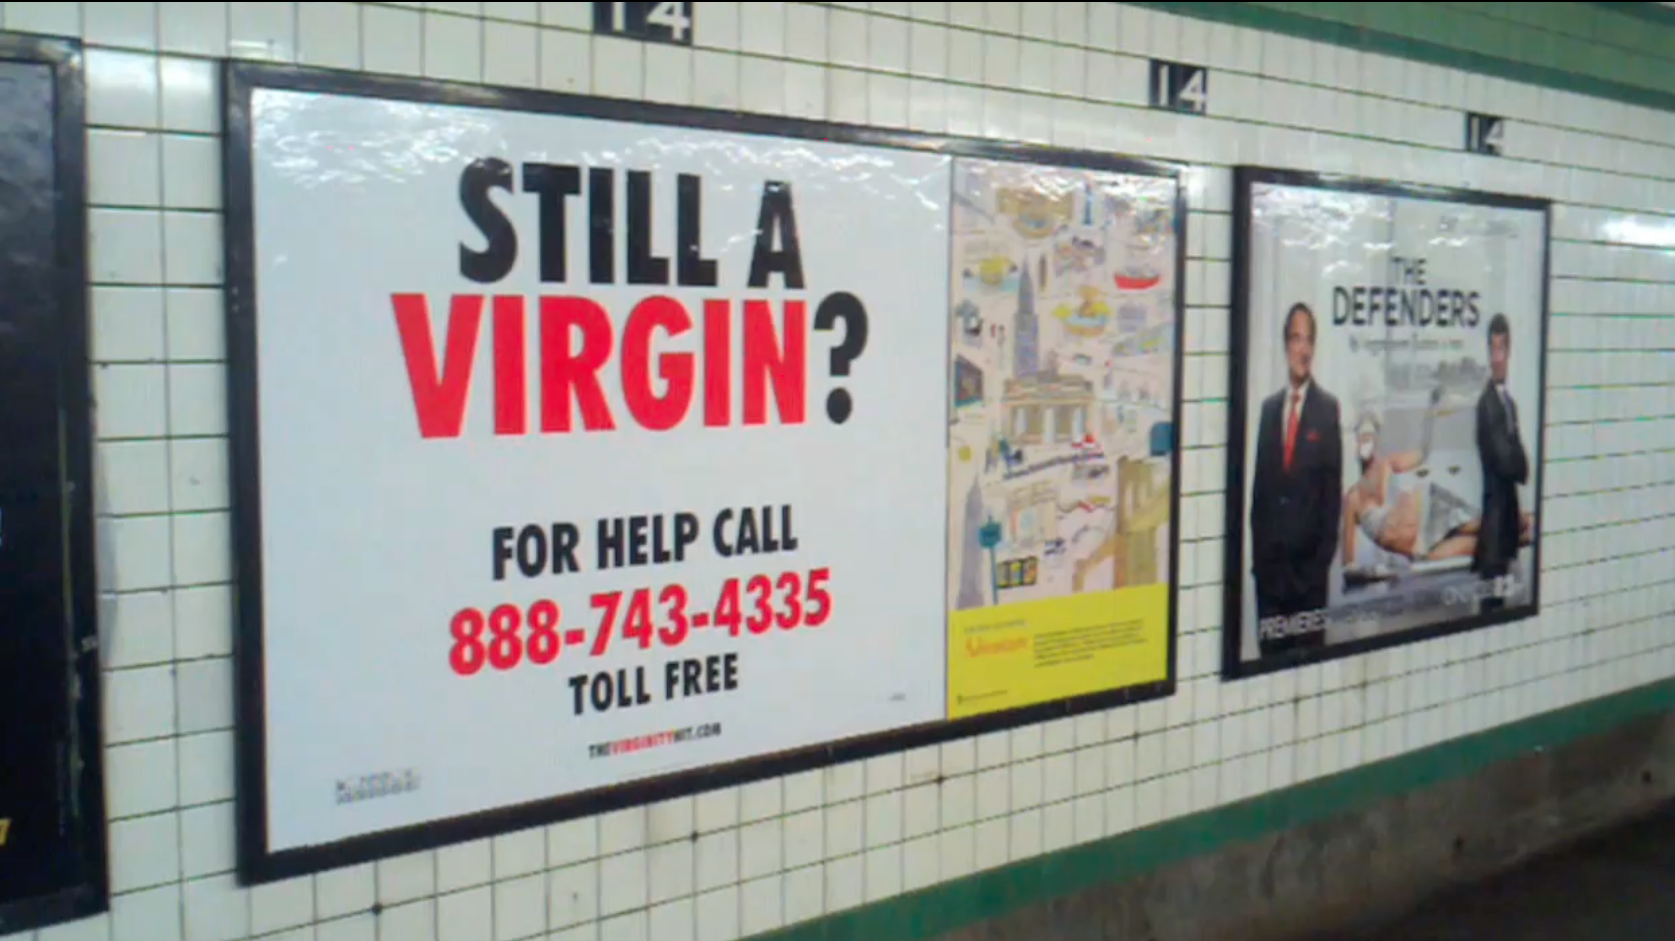 BILLBOARD IN NEW YORK CITY SUBWAY STATION. PHOTO BY THERESE SHECHTER